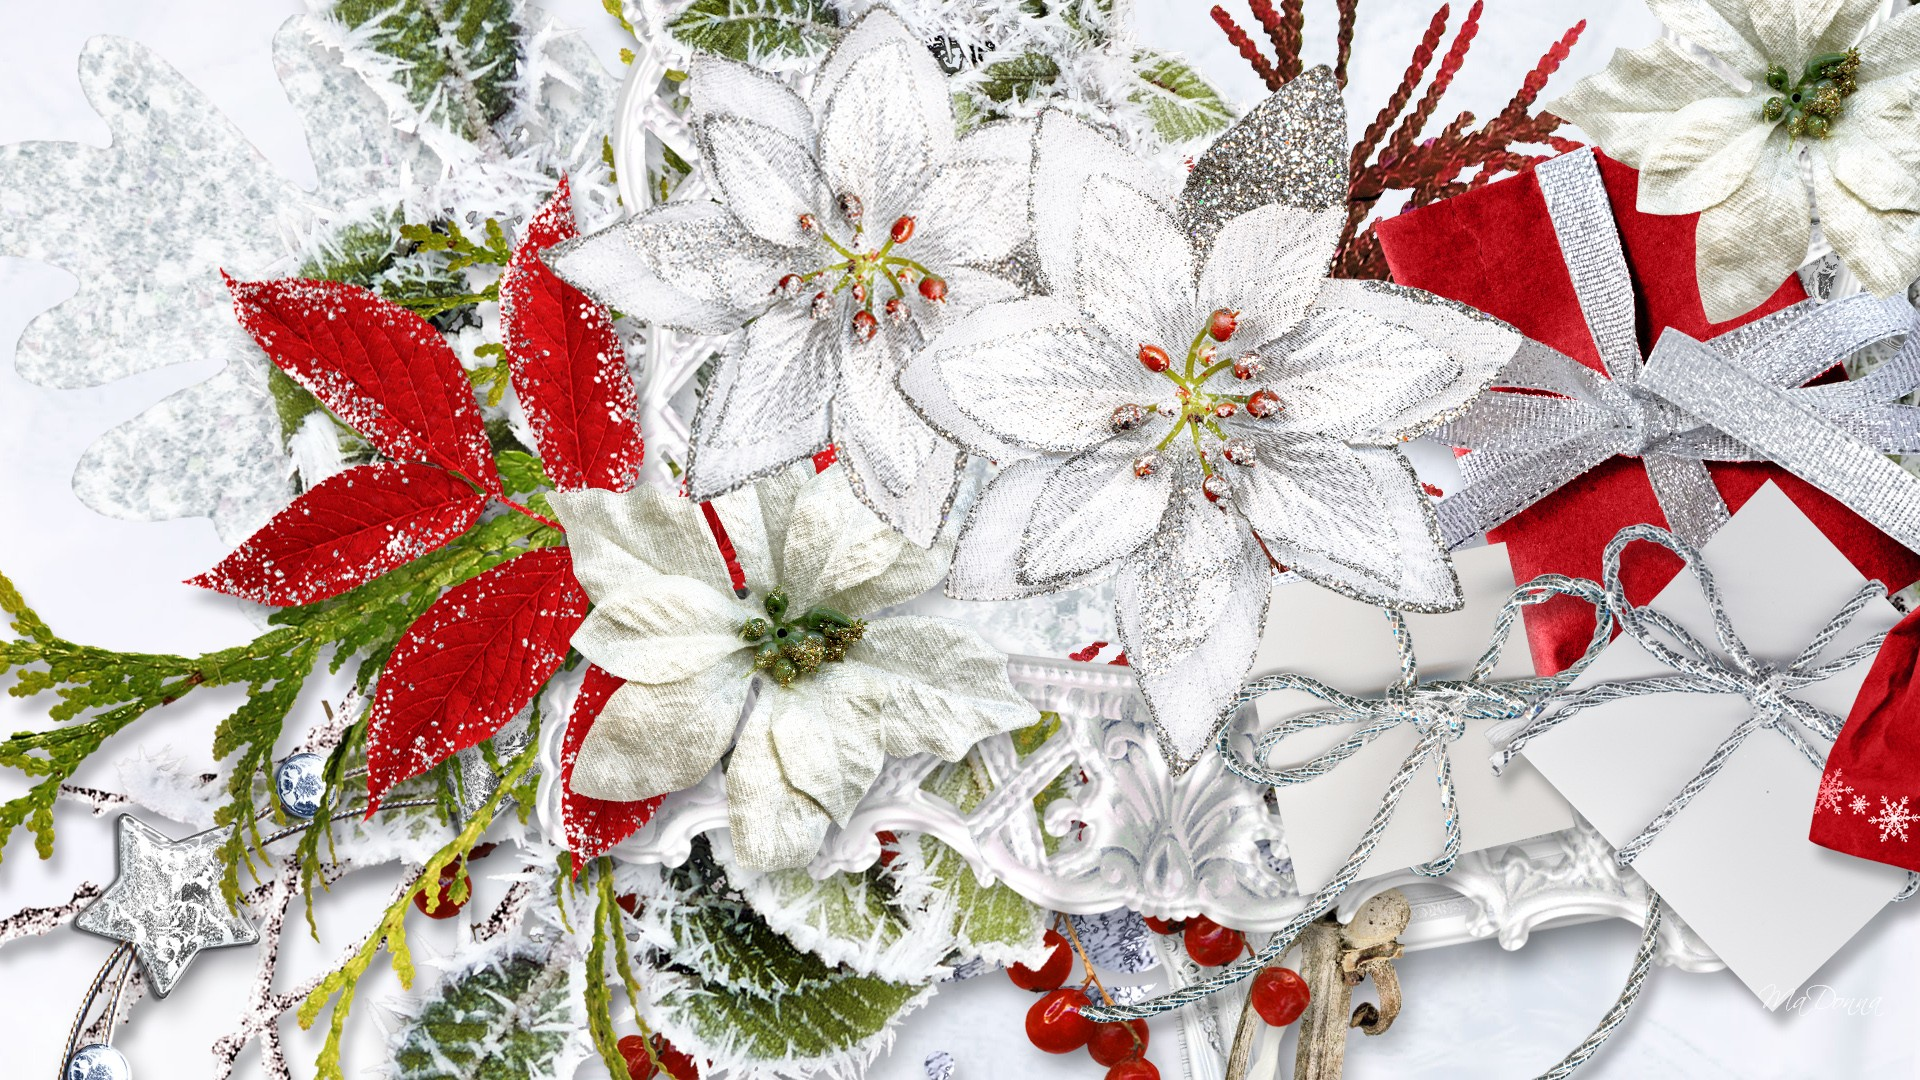 Images of christmas flowers picture transparent christmas flowers pictures picture transparent